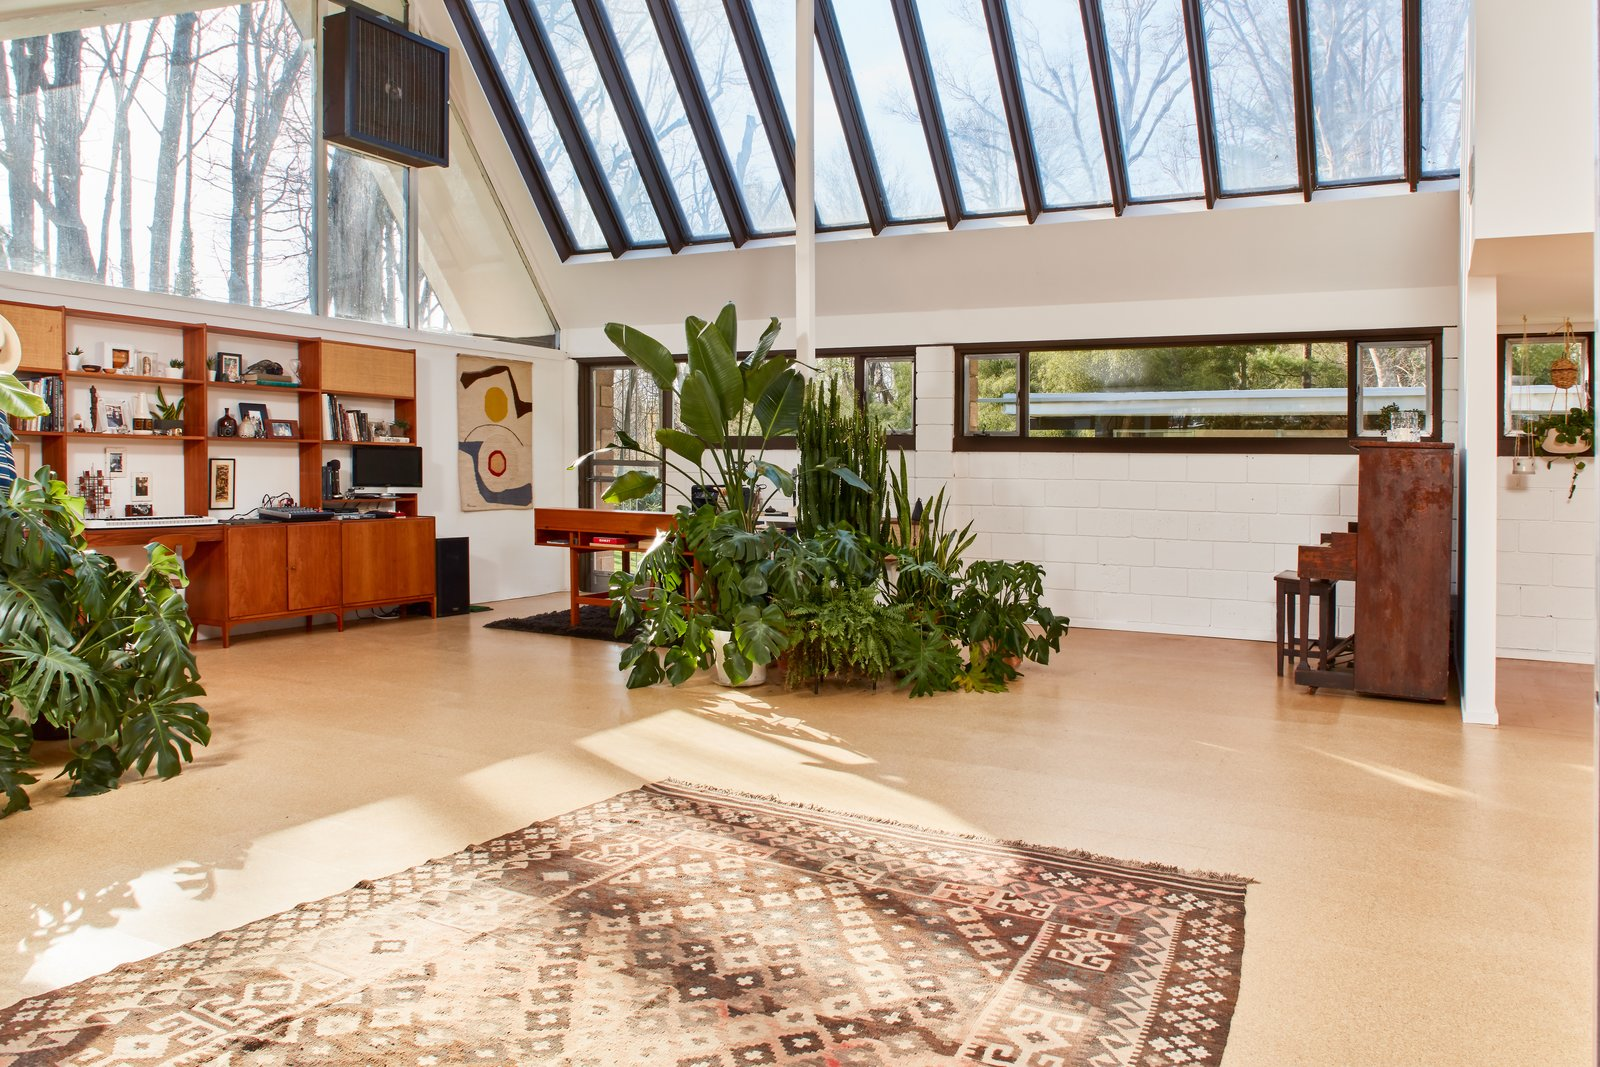 The Stunningly Restored Hassrick Residence by Richard Neutra Hits the Market at $2.2M - Photo 3 of 13